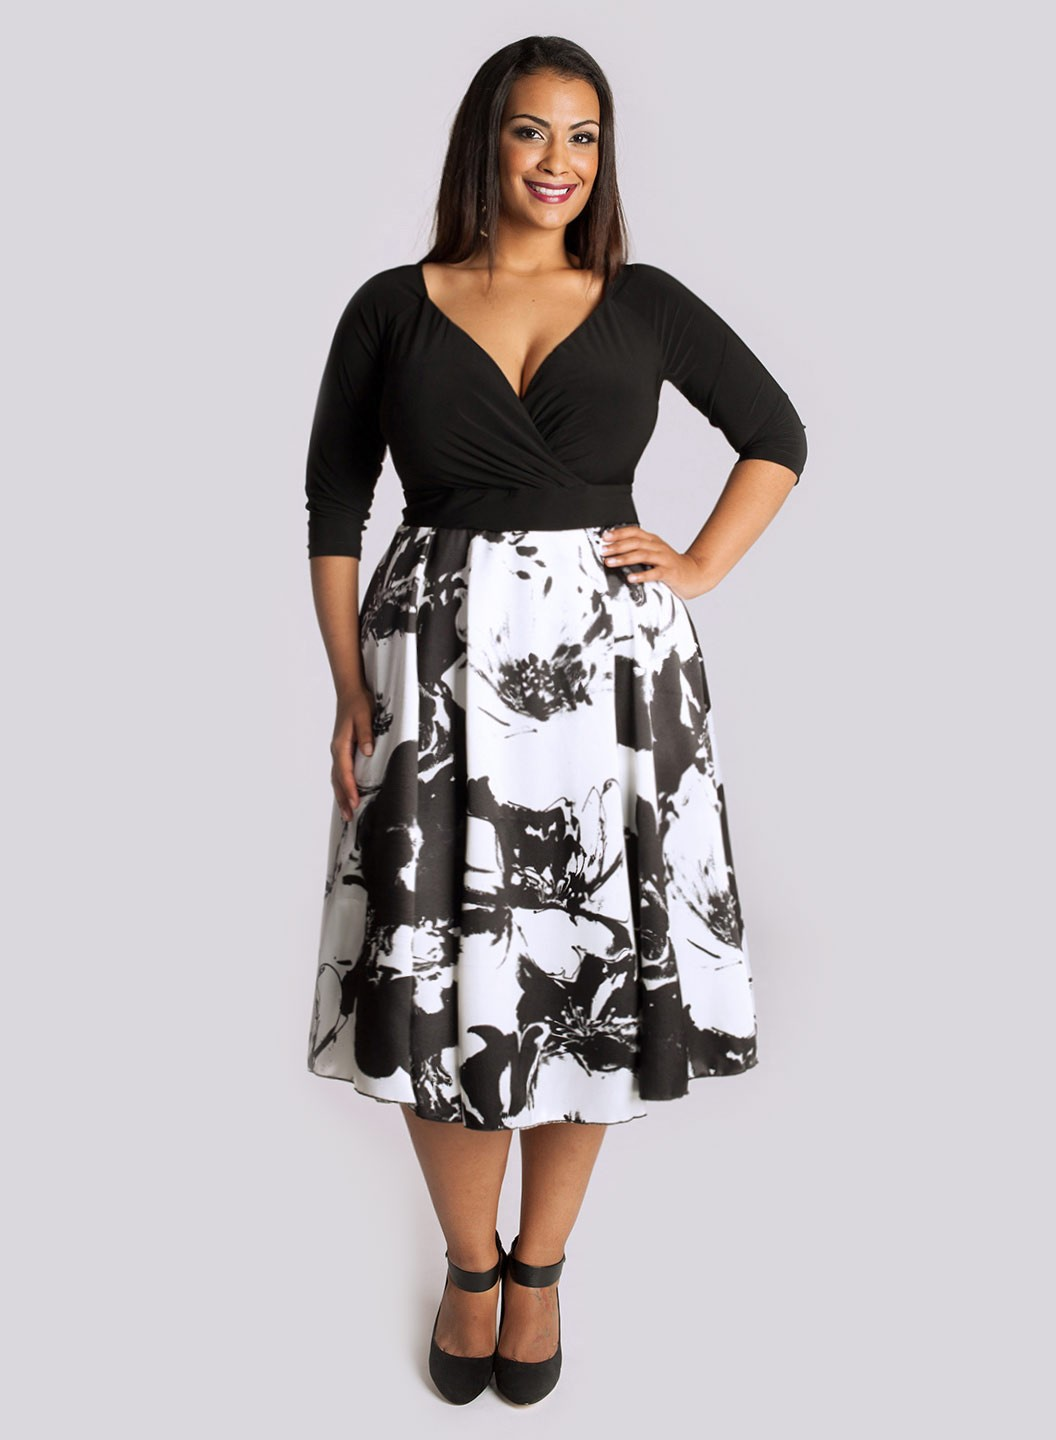 Inexpensive Plus Size Designer Clothing Cheap online clothing stores